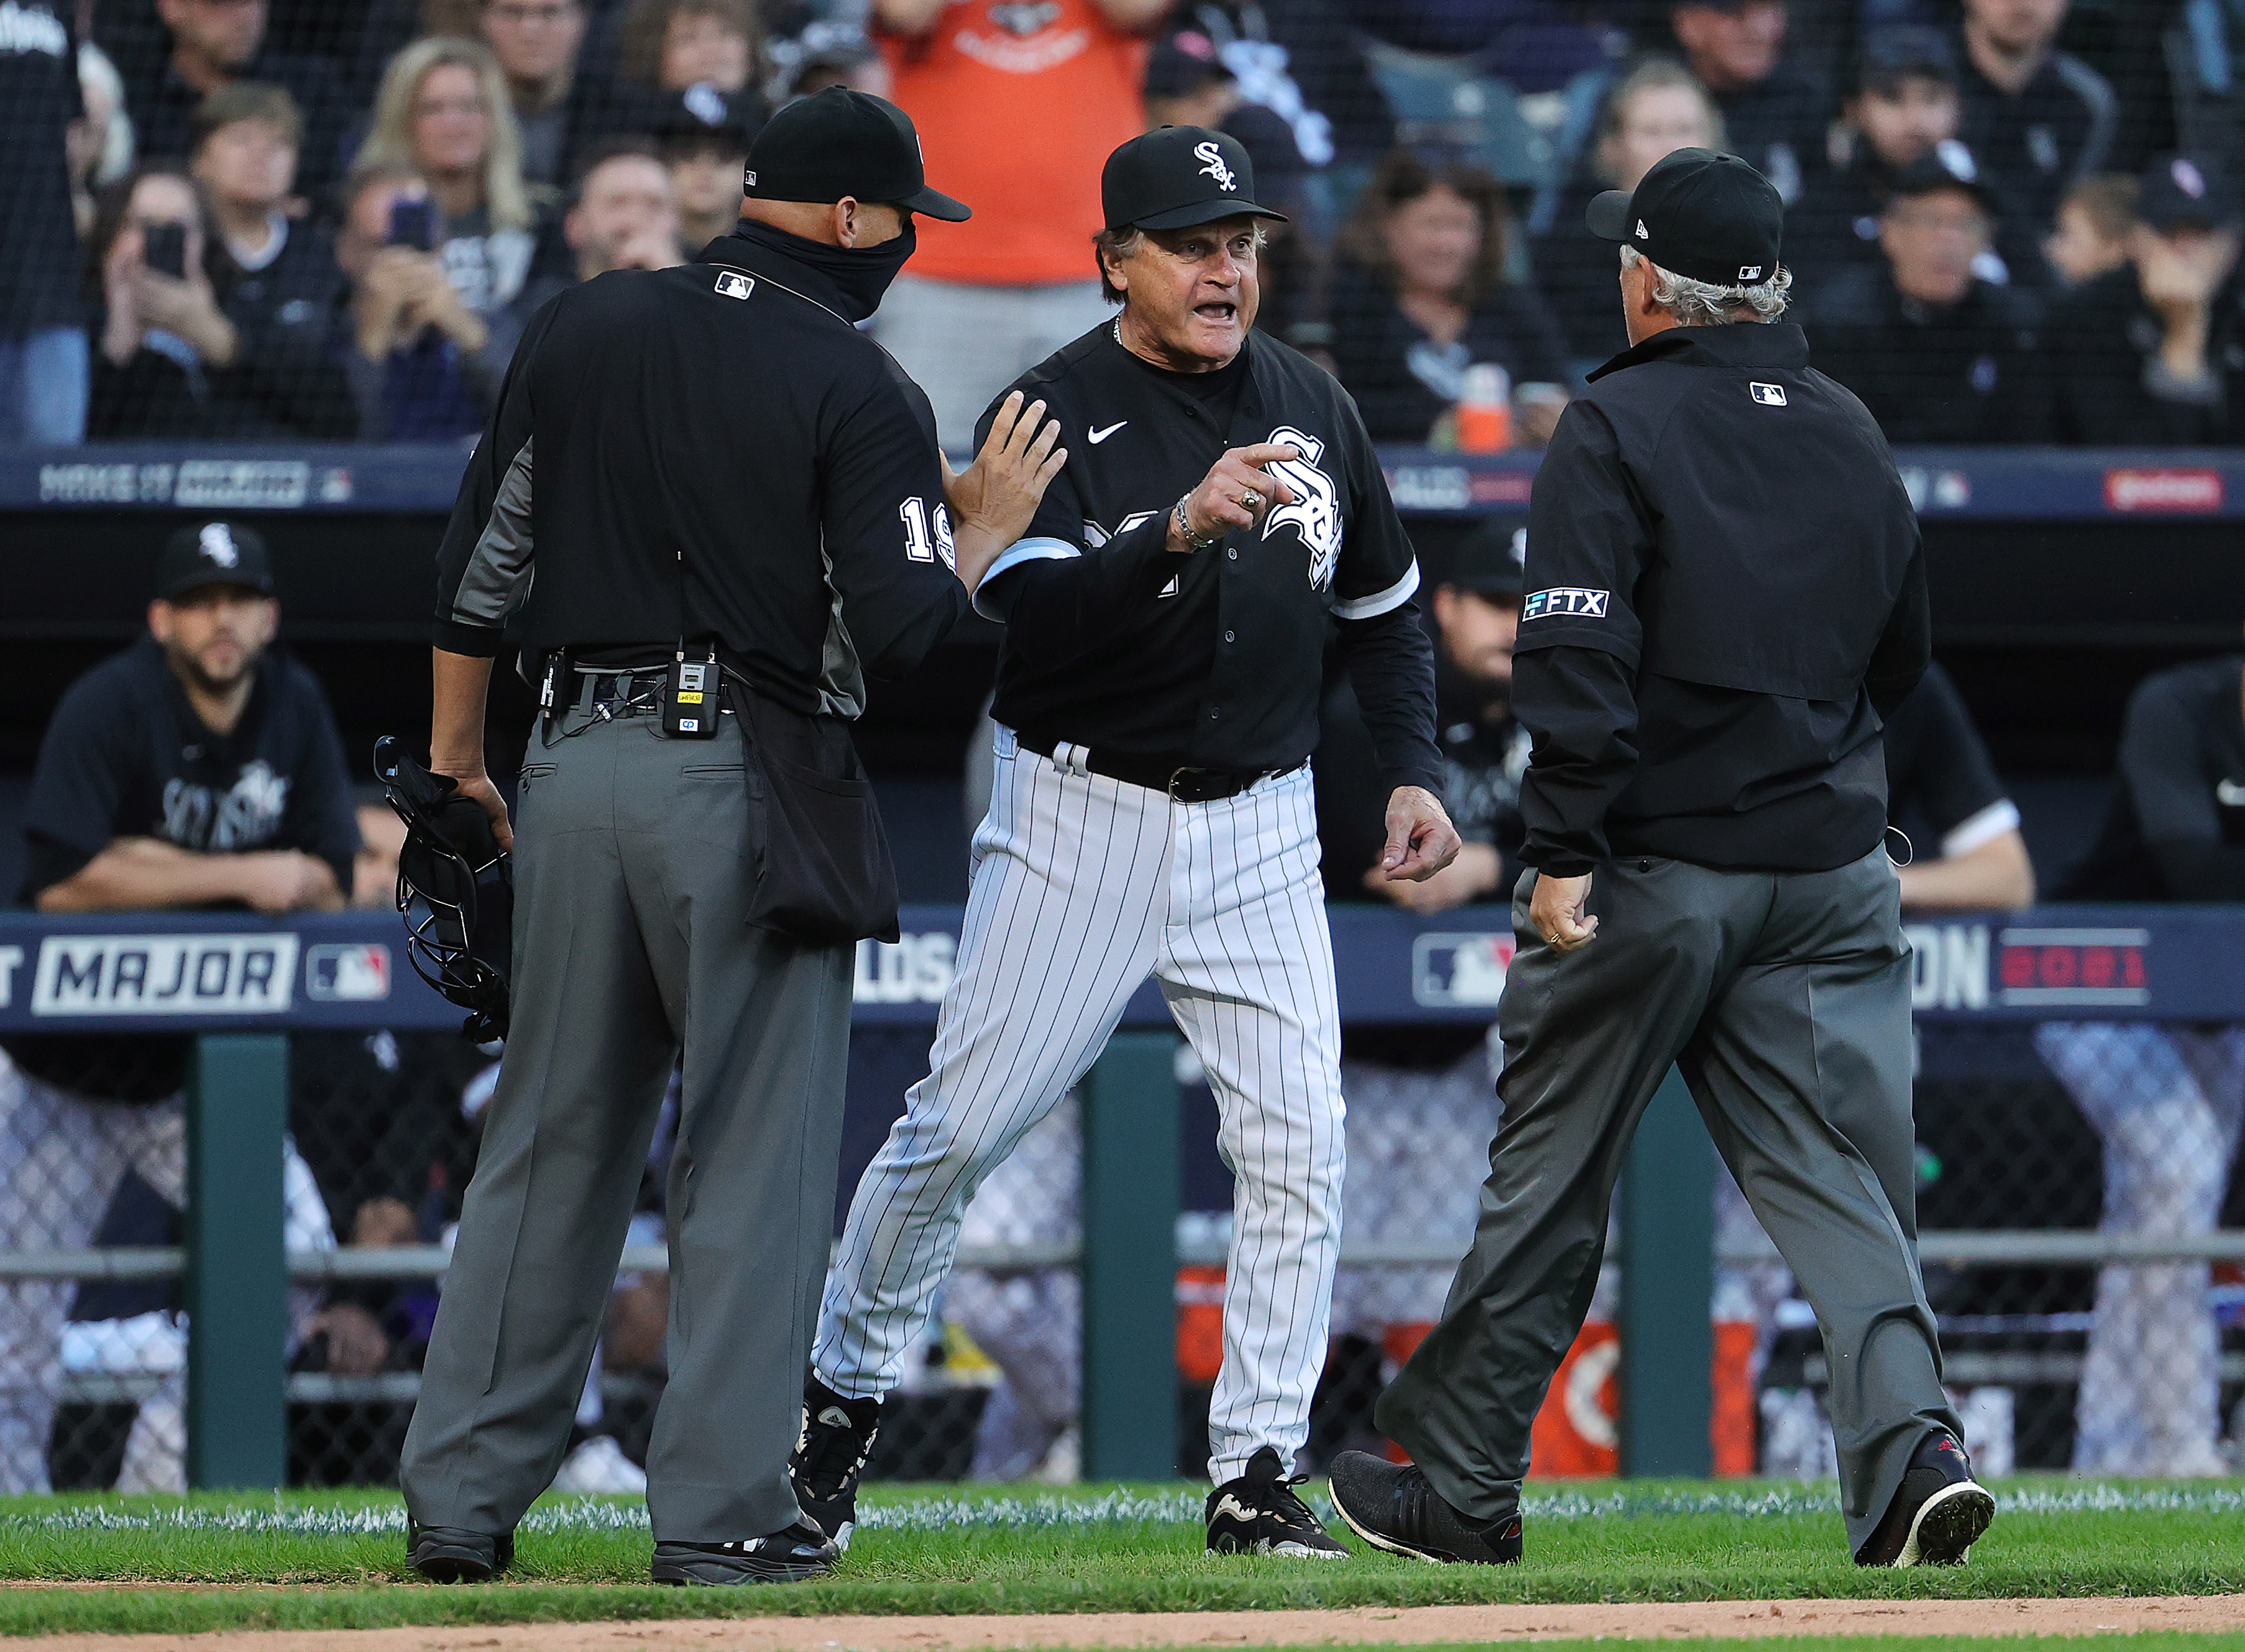 Tony La Russa begins a long argument with the umpires after Jose Abreu was hit by a pitch from the Astros' Kendall Graveman in Game 4.